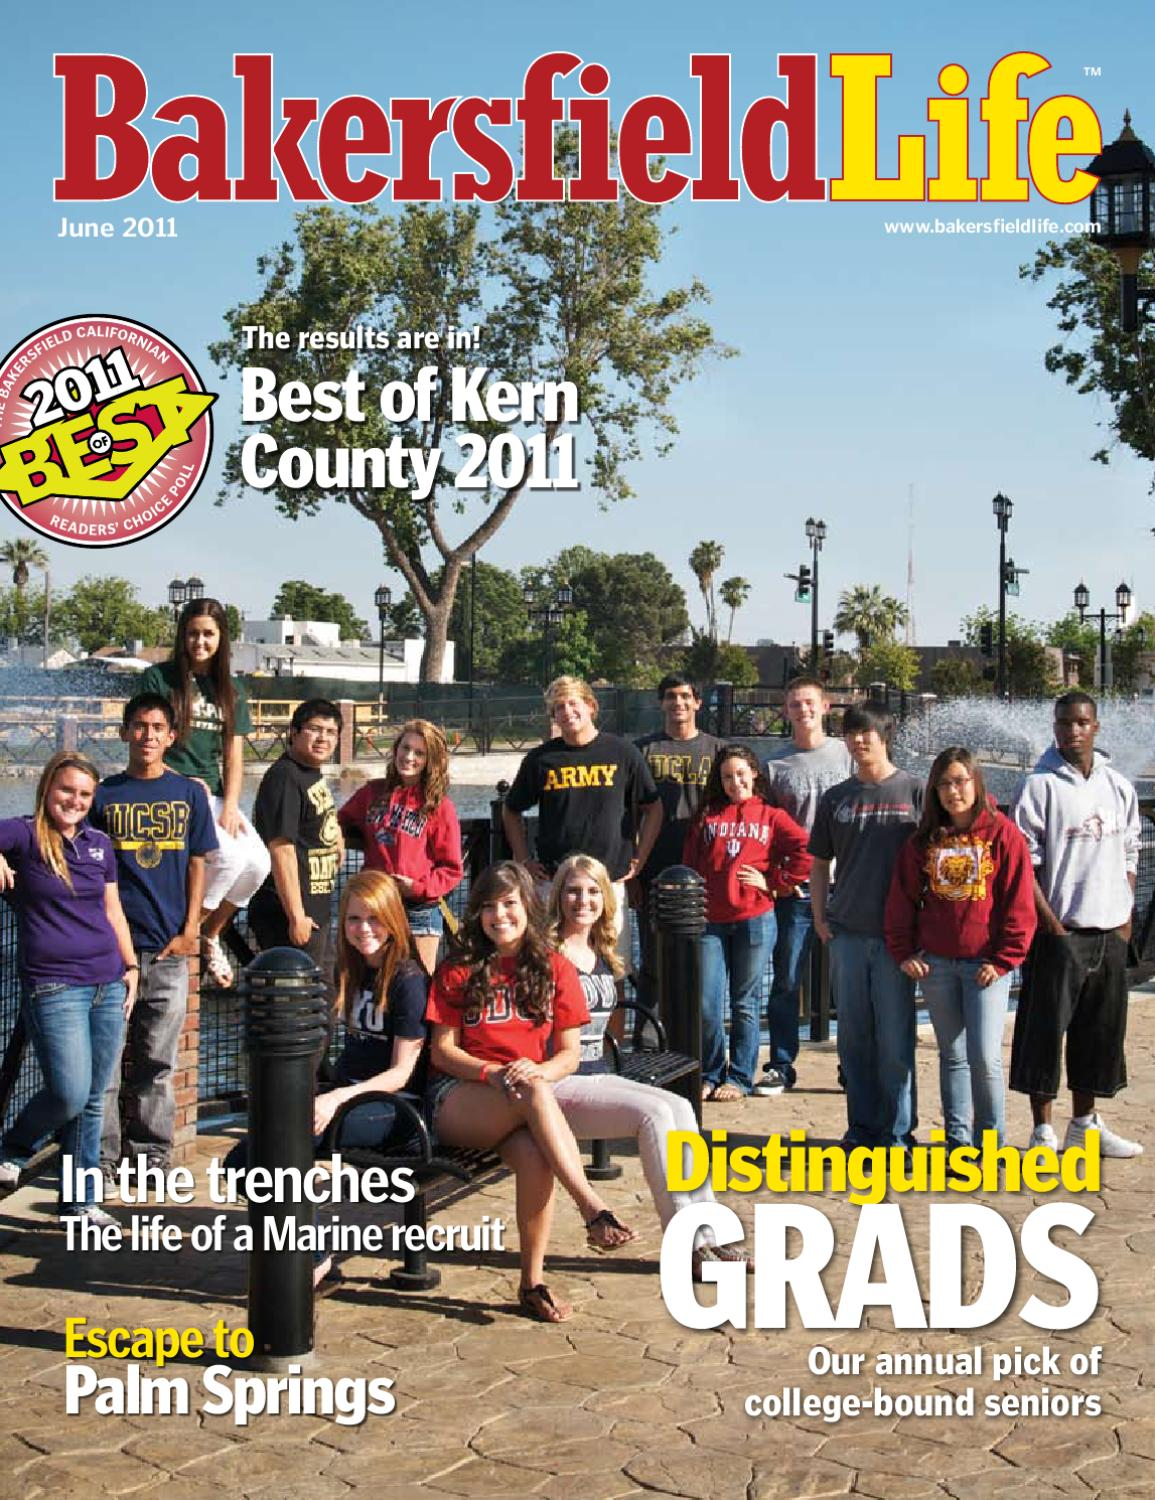 Bakersfield Life Magazine June 2011 By Tbc Media Specialty